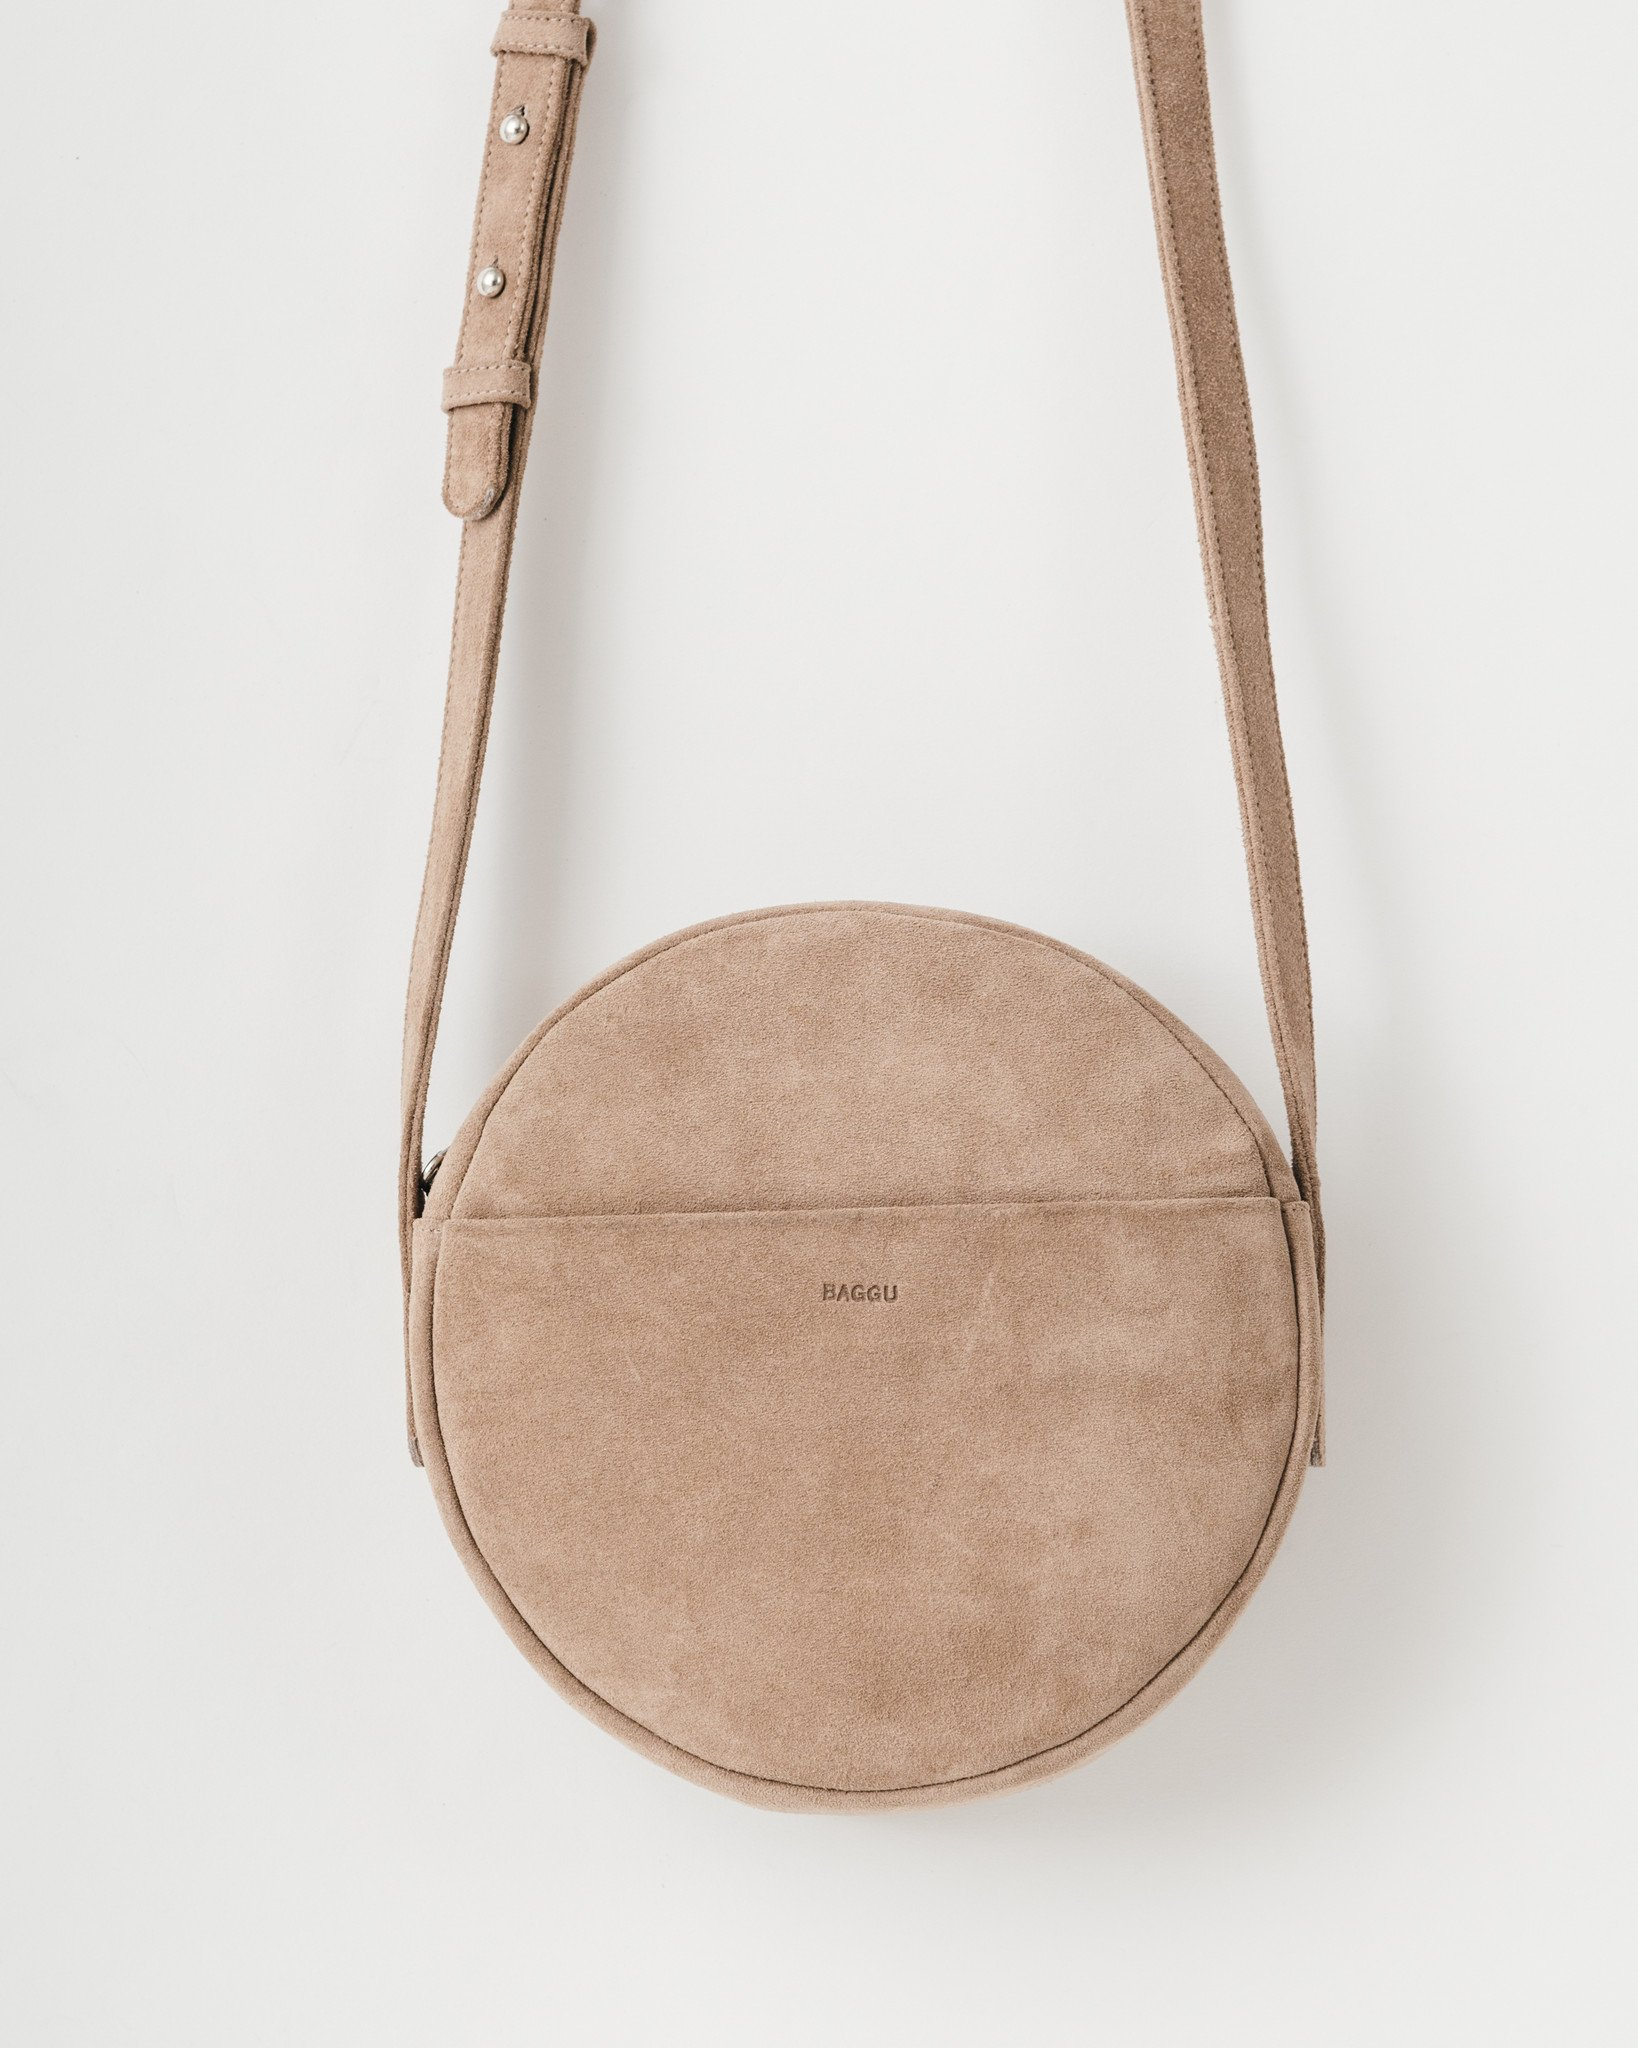 Baggu circle bag—Tuesday trifecta